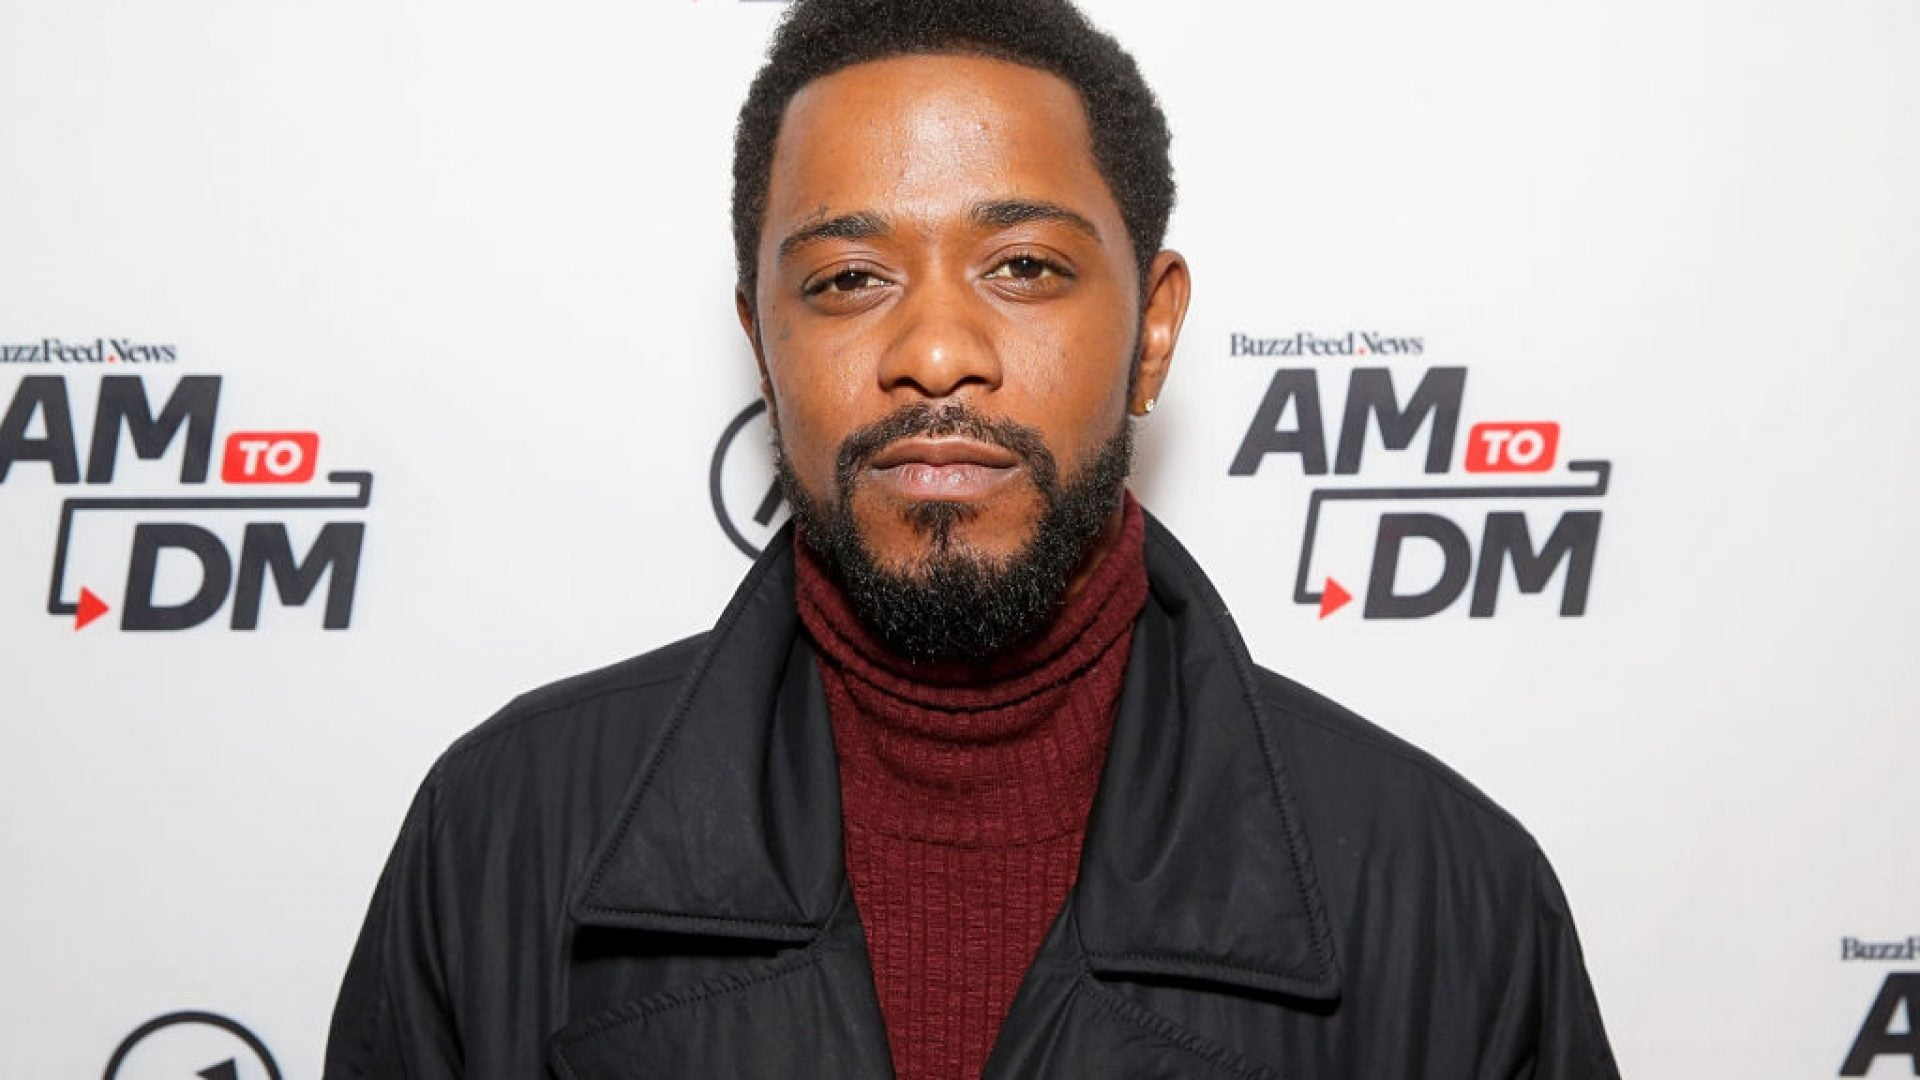 LaKeith Stanfield Concerns Fans After Cryptic Instagram Posts